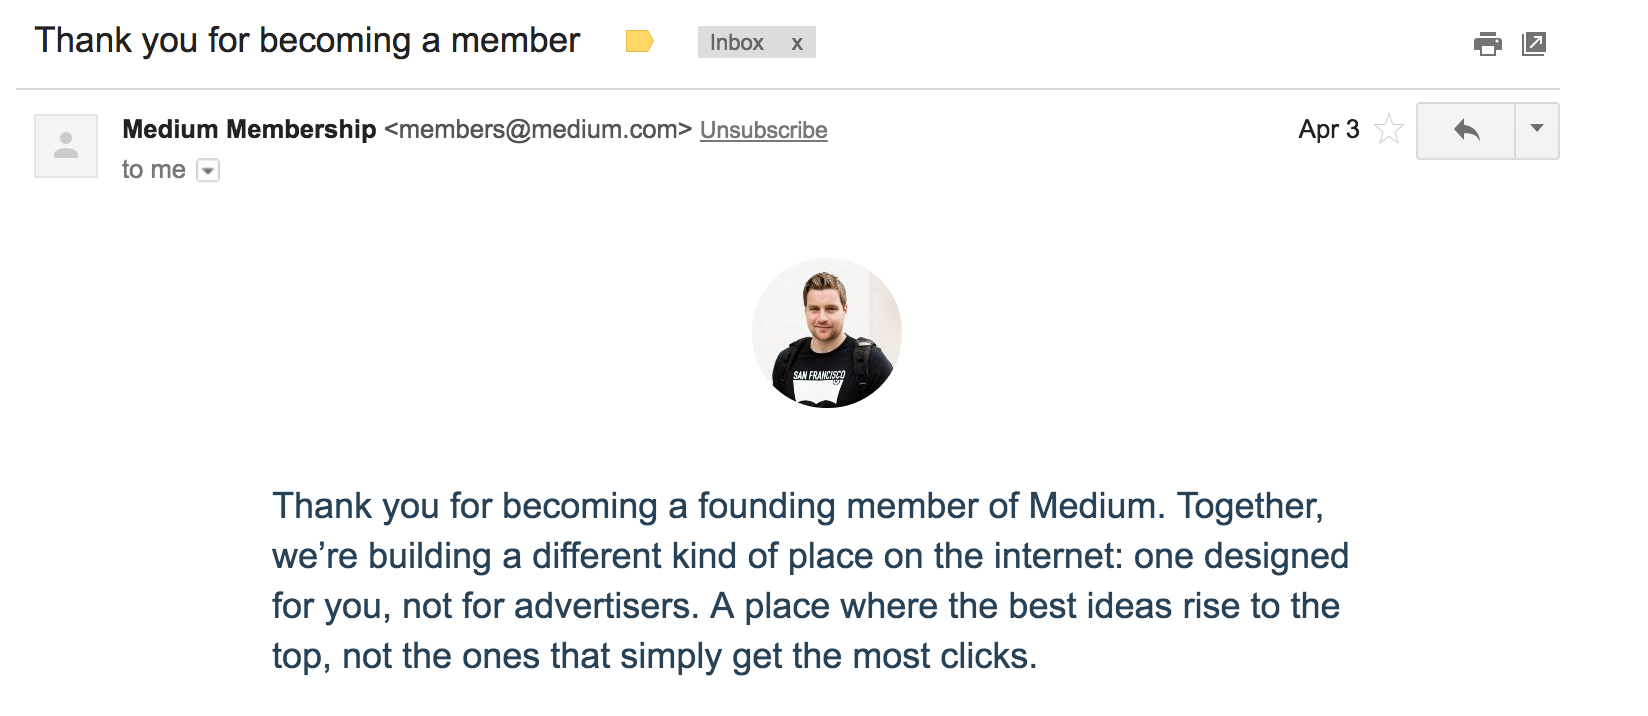 Medium thank you email subject example